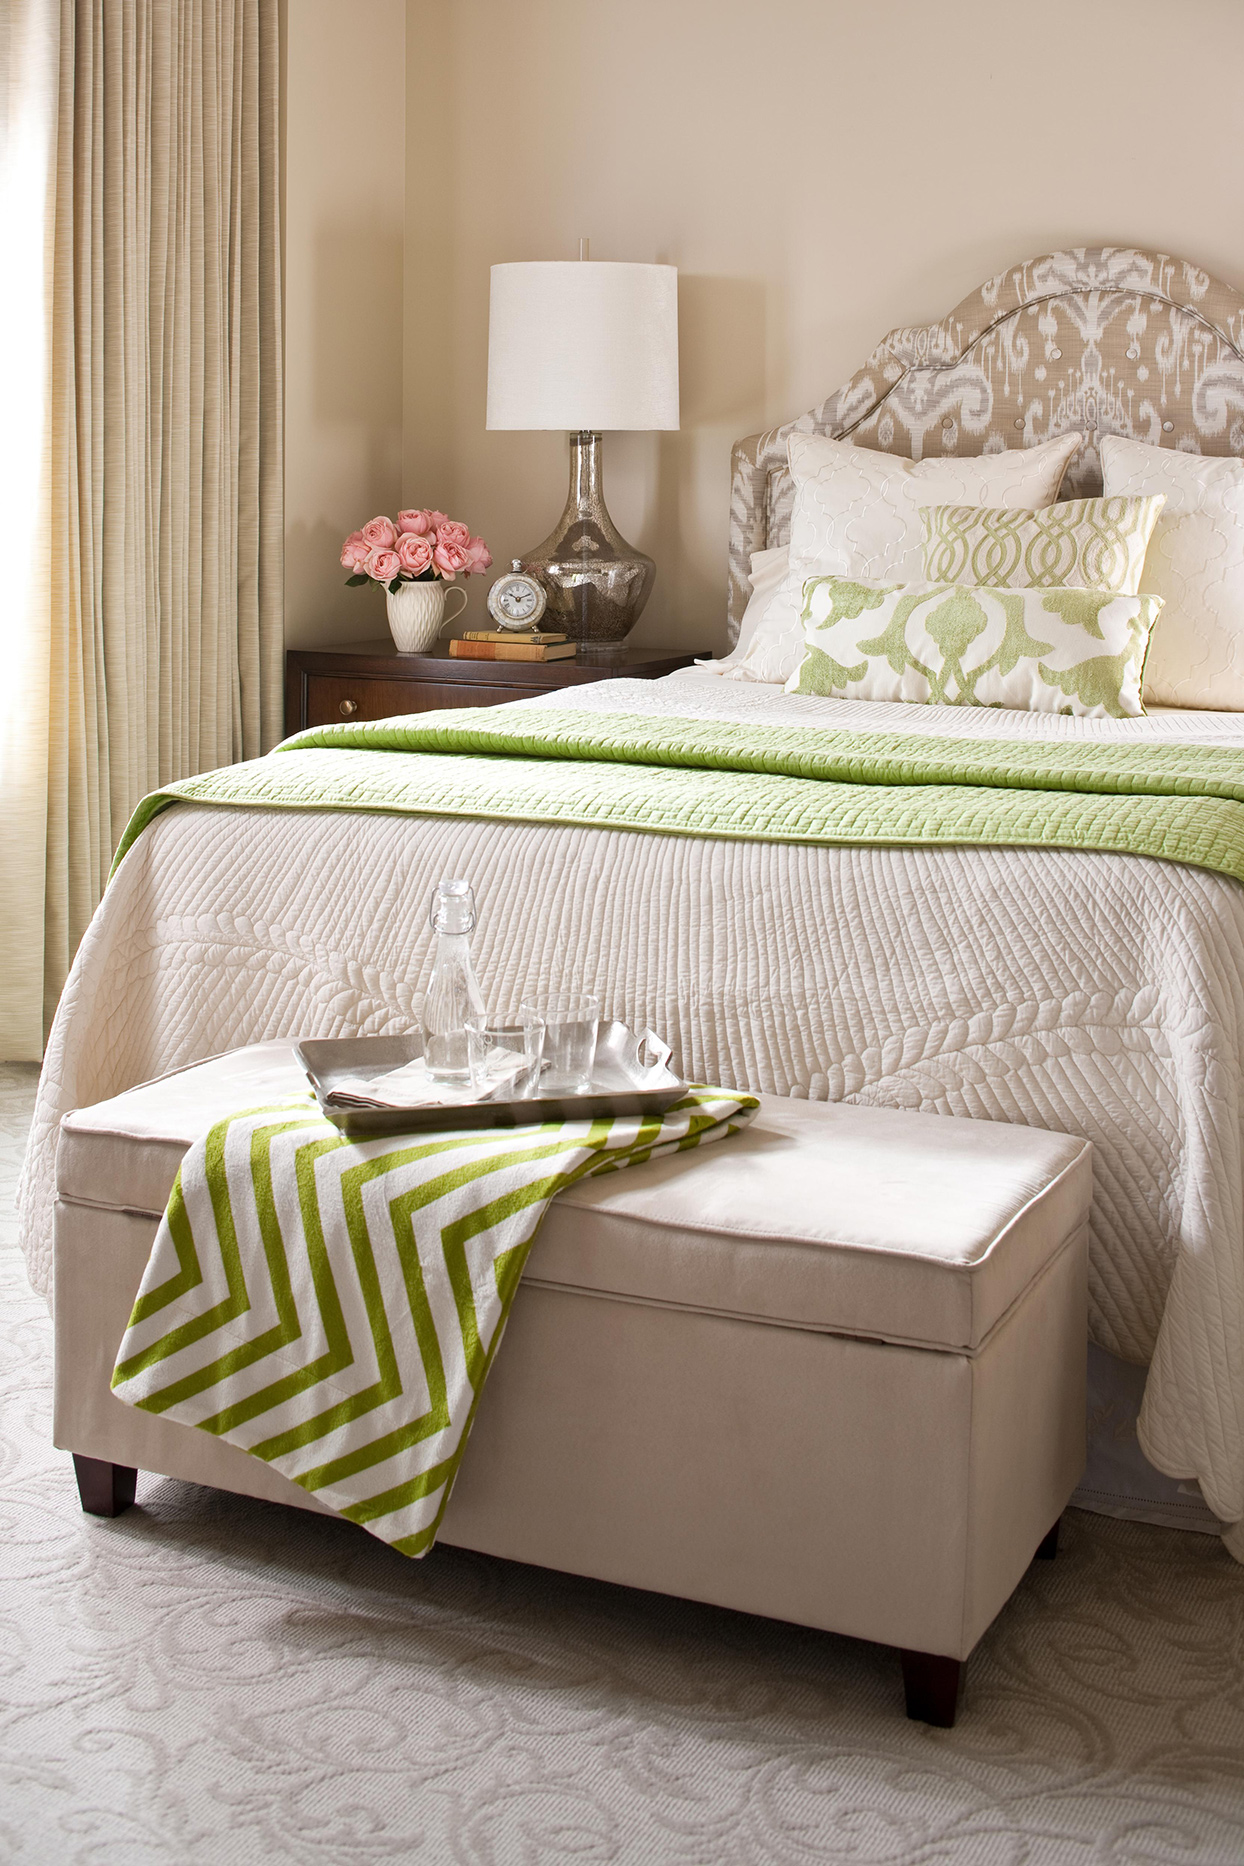 Linen + Pale Taupe + Moss bedroom with textured carpet